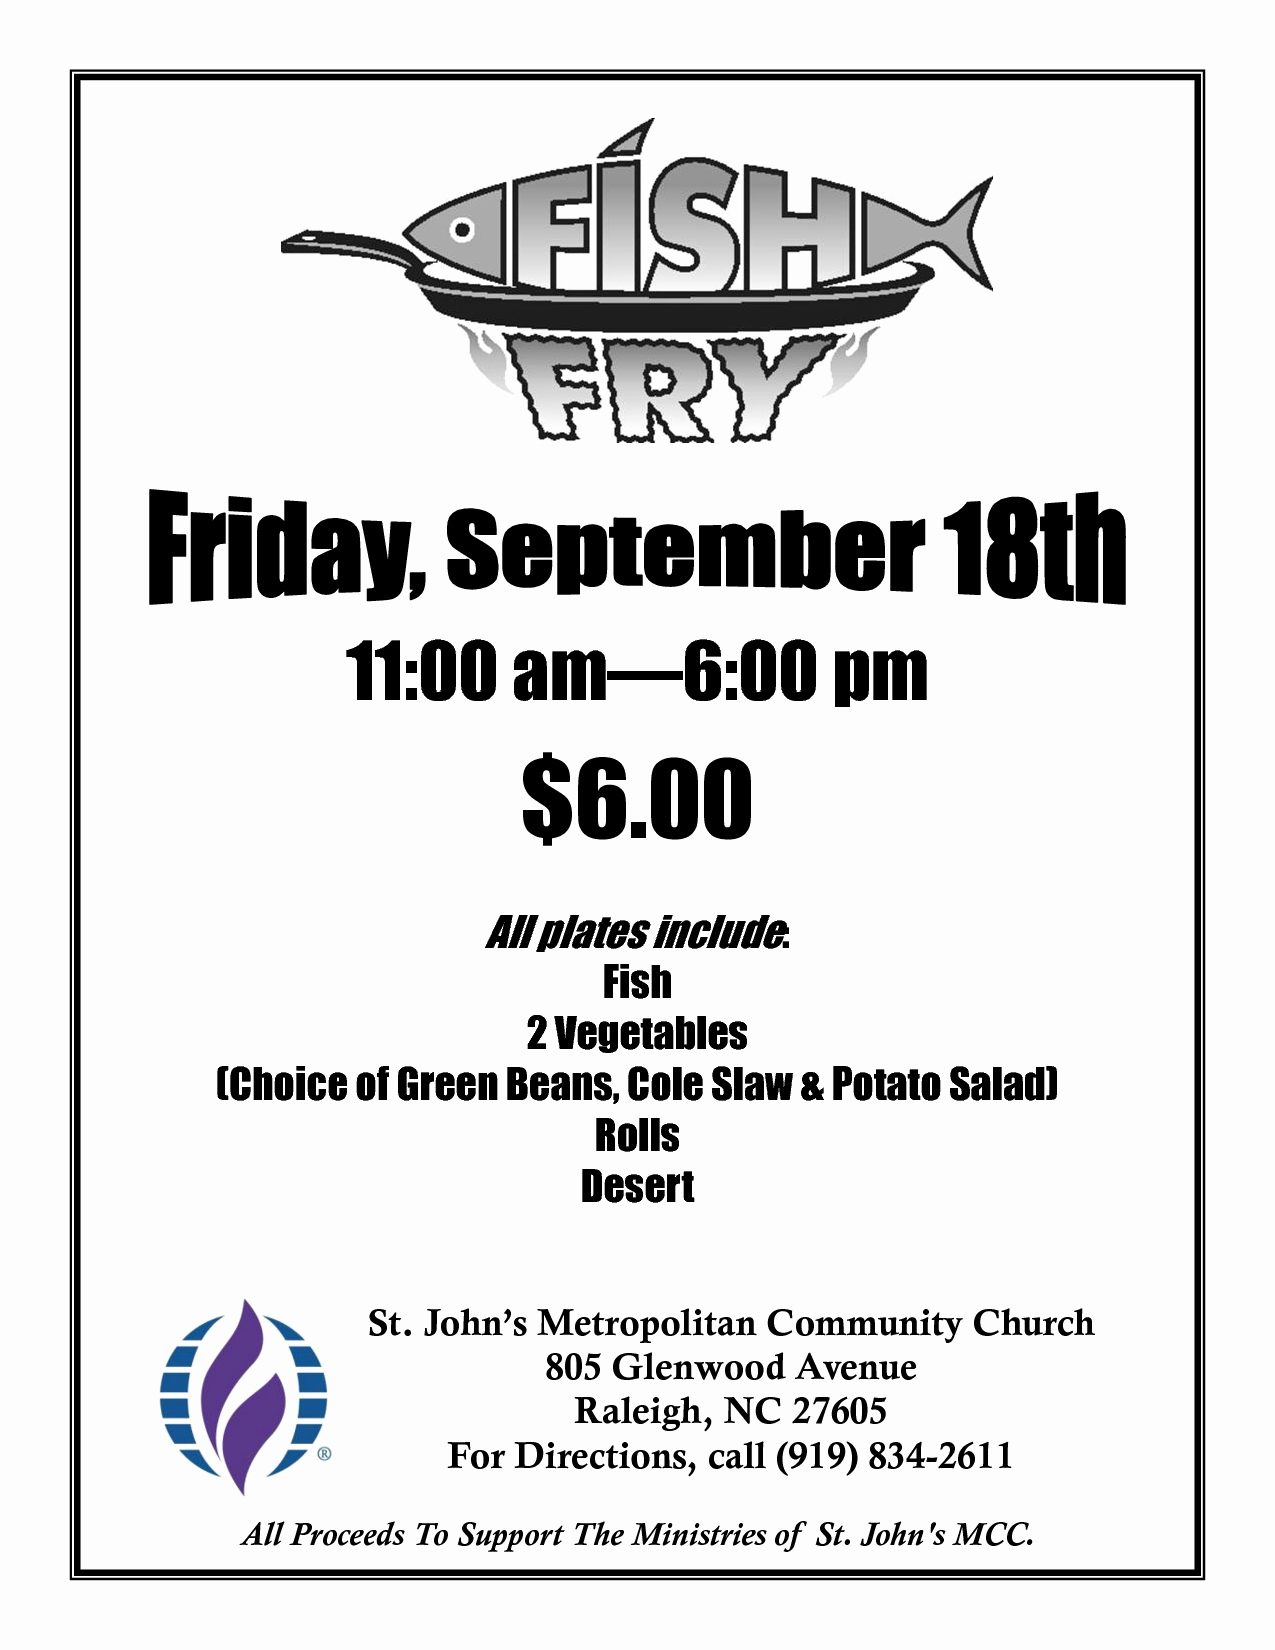 Free Fish Fry Flyer Templates Fish Fry Poster